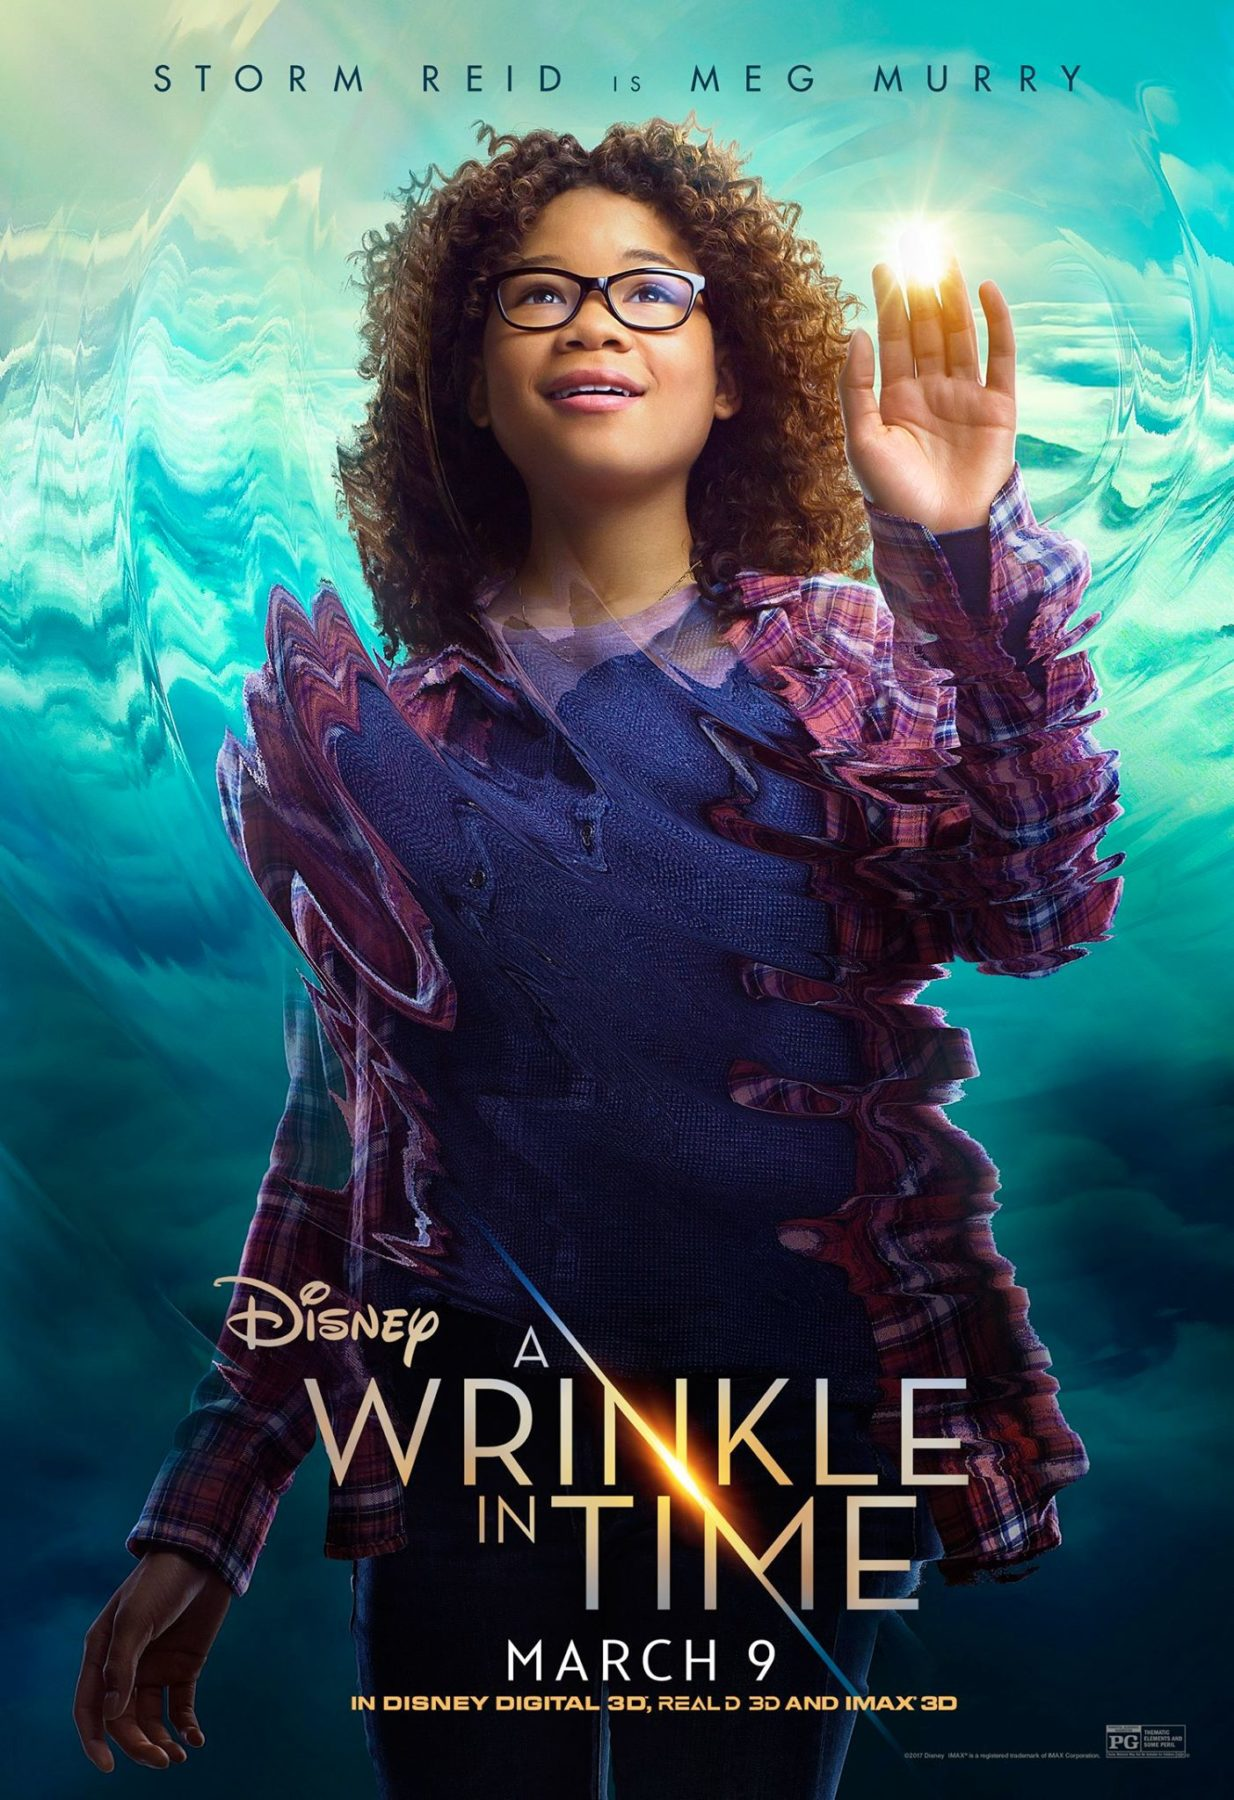 A Wrinkle In Time Gets Four Character Posters